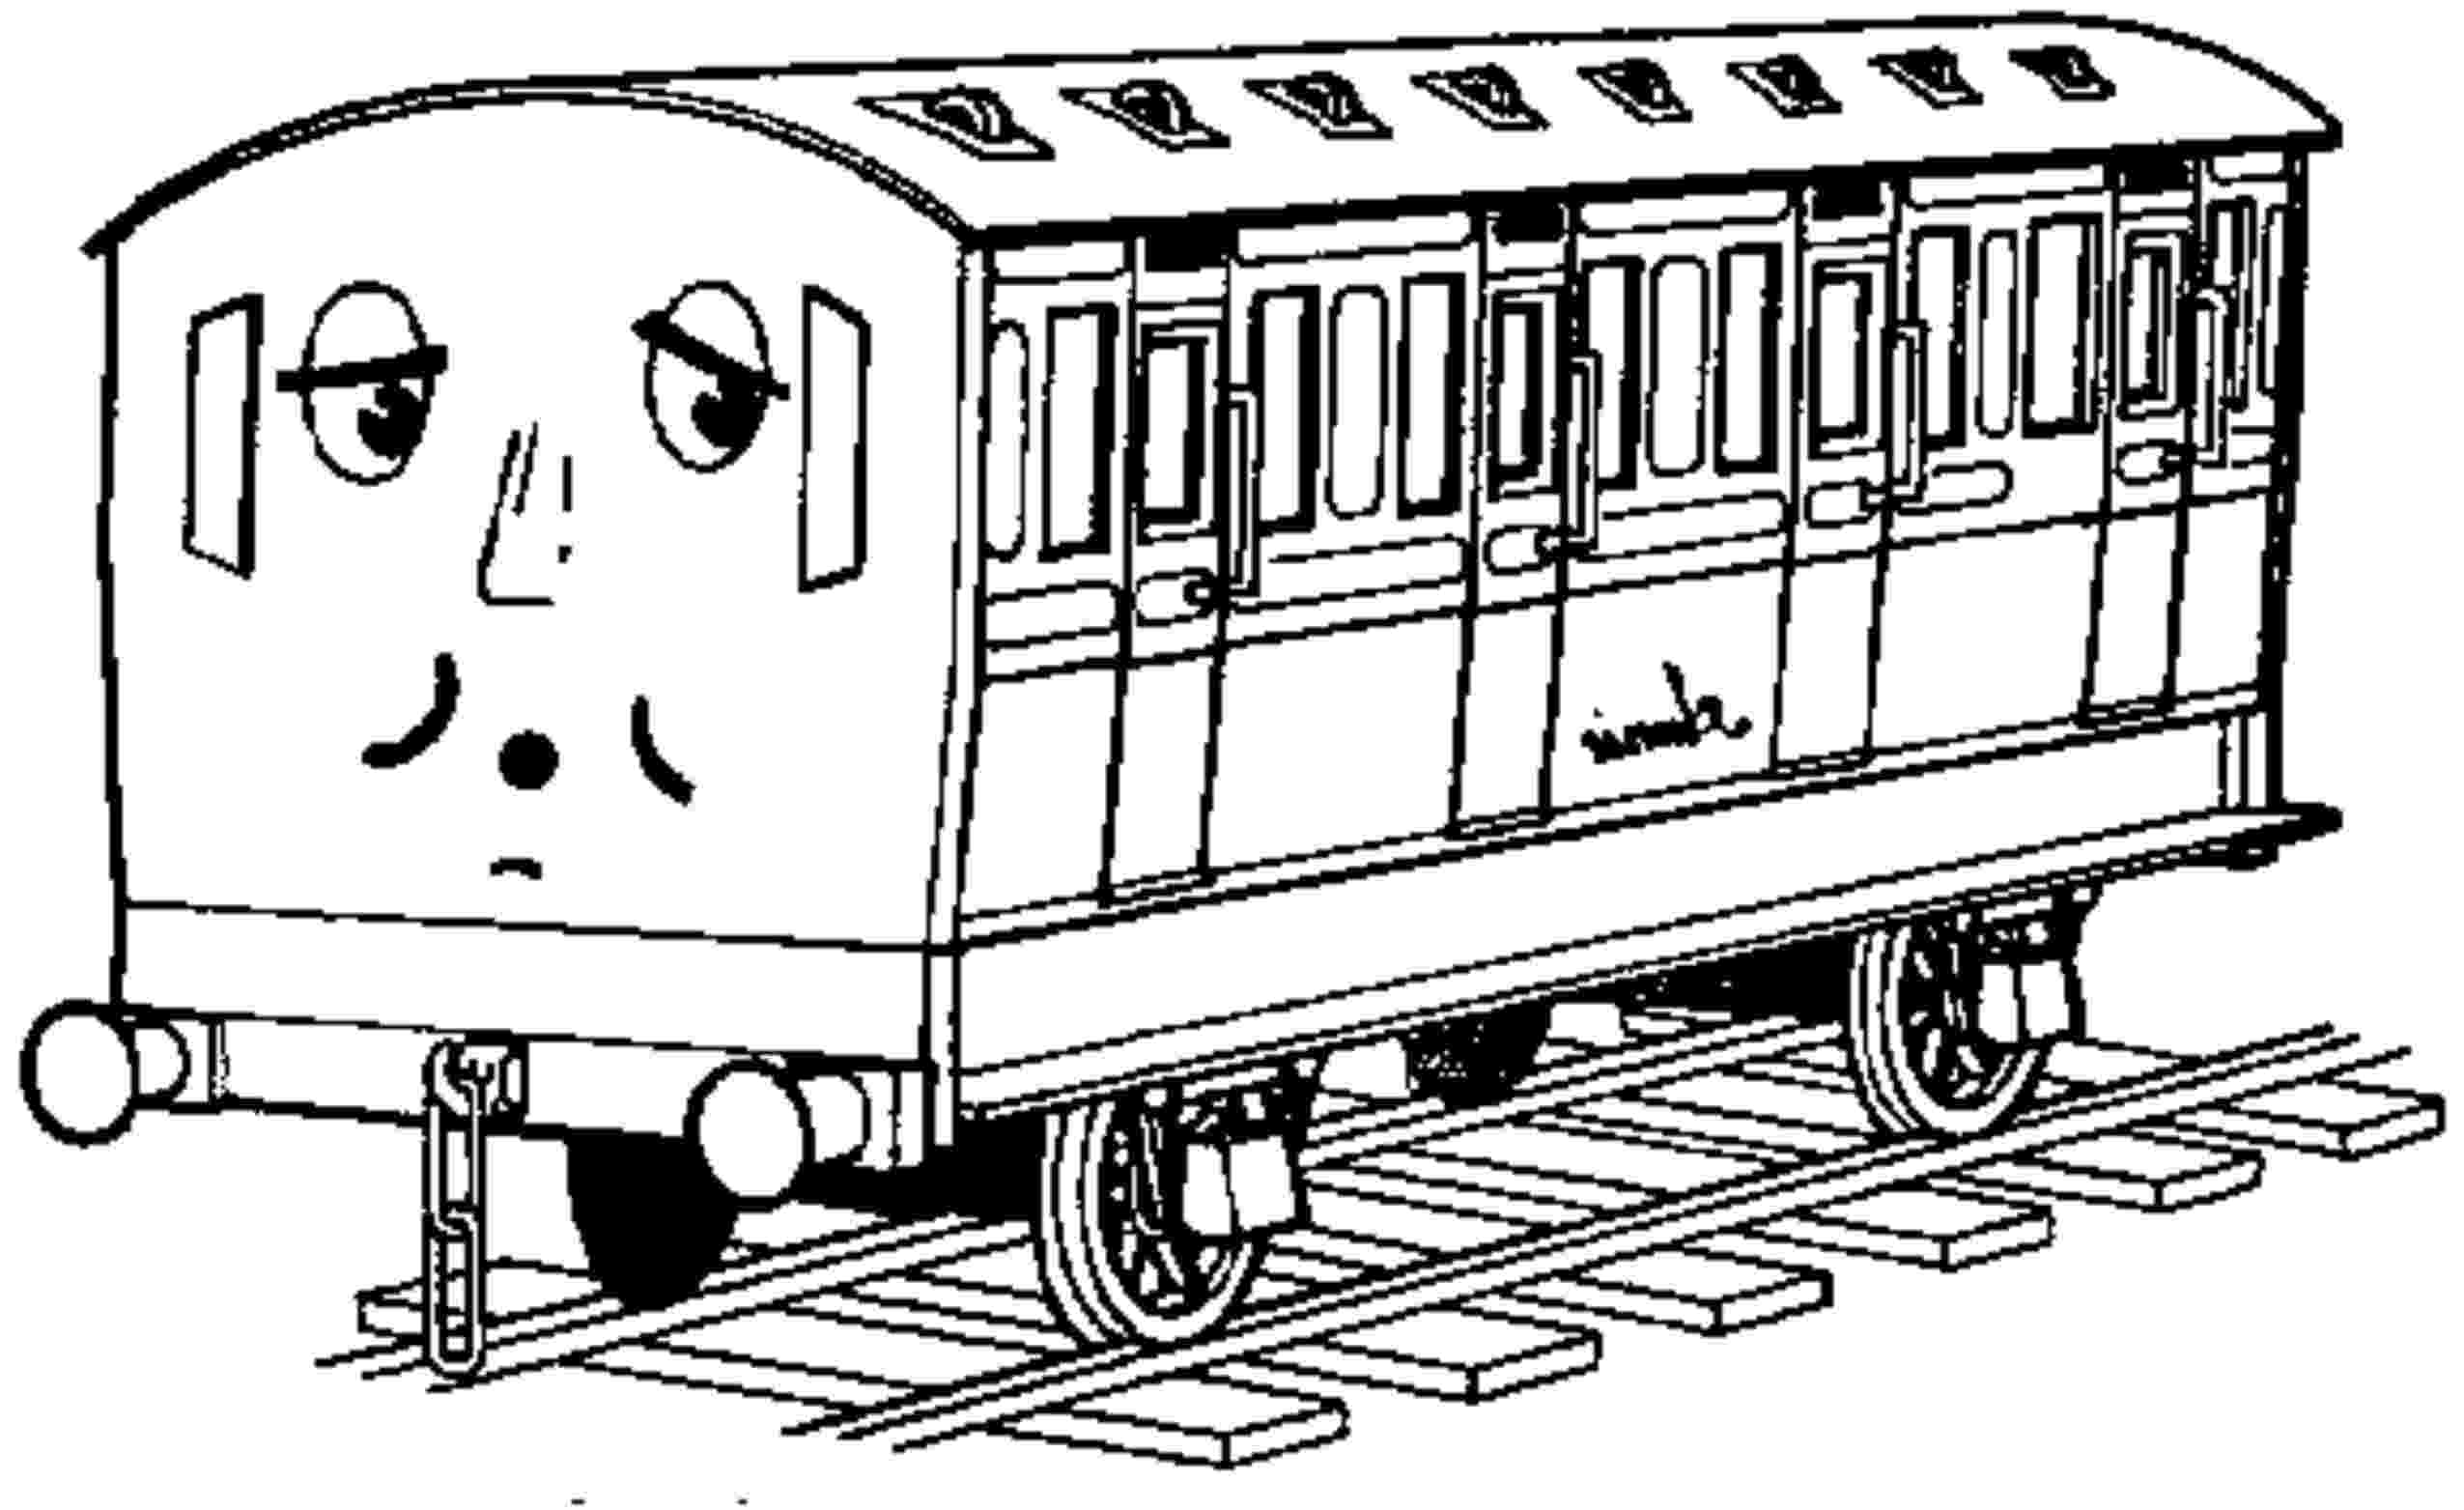 thomas and friends coloring pages toby from thomas friends coloring page free printable pages and thomas friends coloring